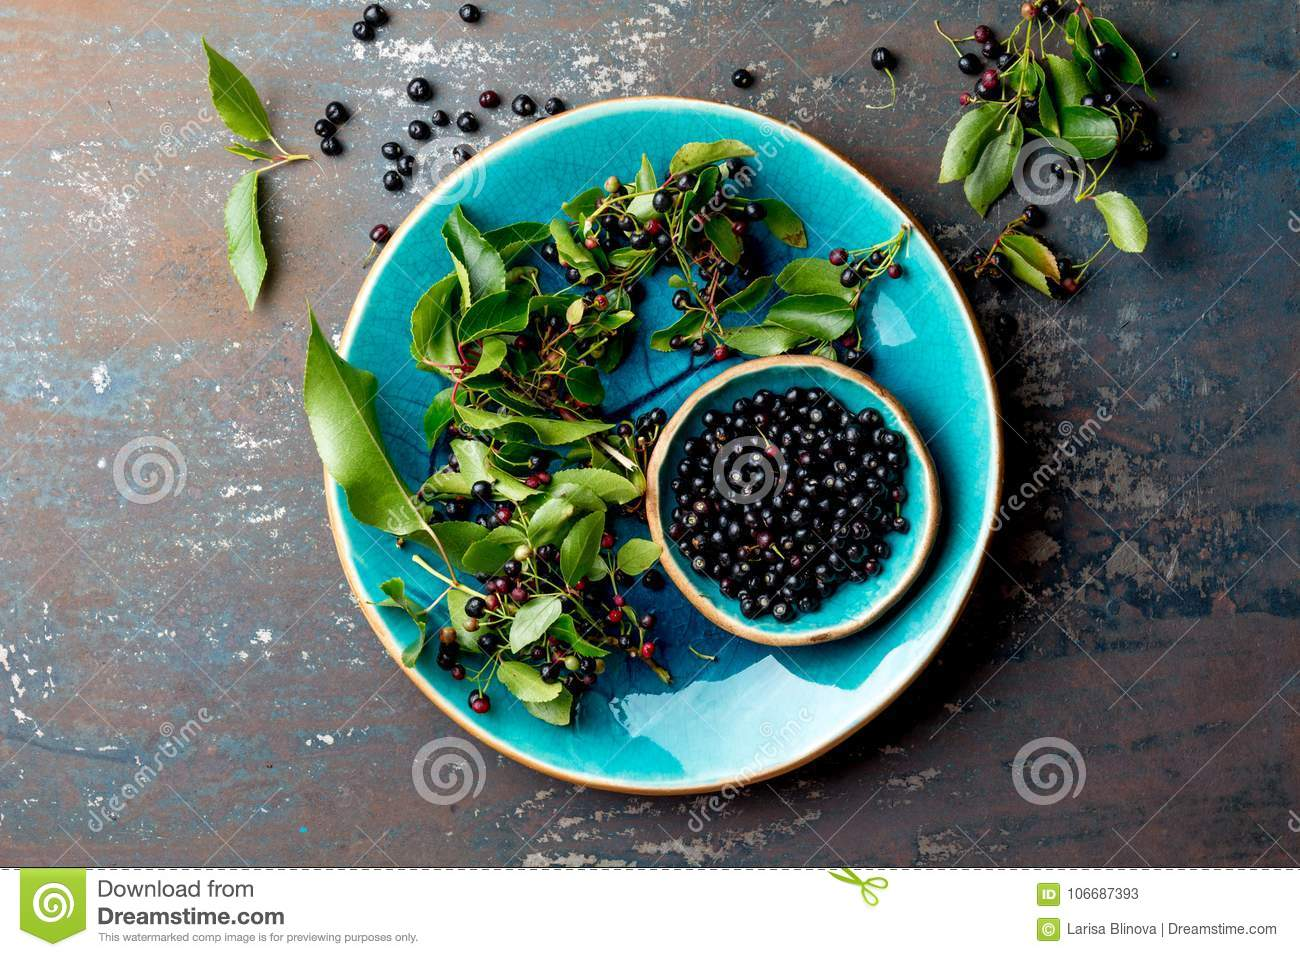 16 Maqui Berry Photos Free Royalty Free Stock Photos From